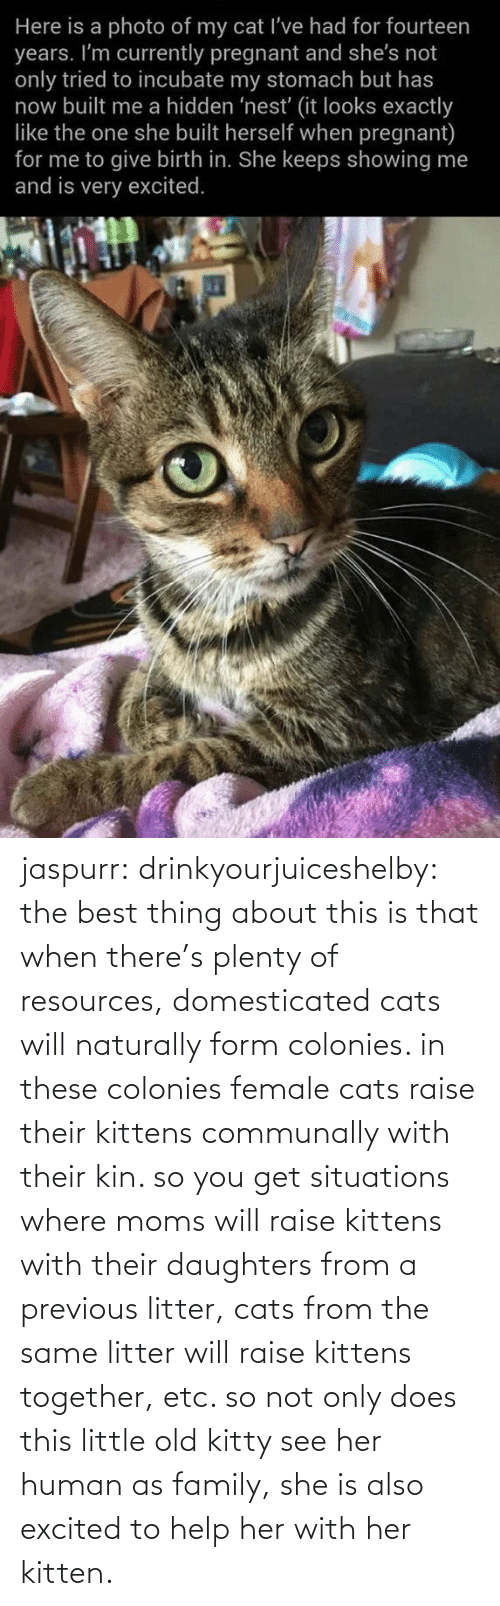 Img Src: jaspurr:  drinkyourjuiceshelby:    the best thing about this is that when there's plenty of resources, domesticated cats will naturally form colonies. in these colonies female cats raise their kittens communally with their kin. so you get situations where moms will raise kittens with their daughters from a previous litter, cats from the same litter will raise kittens together, etc. so not only does this little old kitty see her human as family, she is also excited to help her with her kitten.